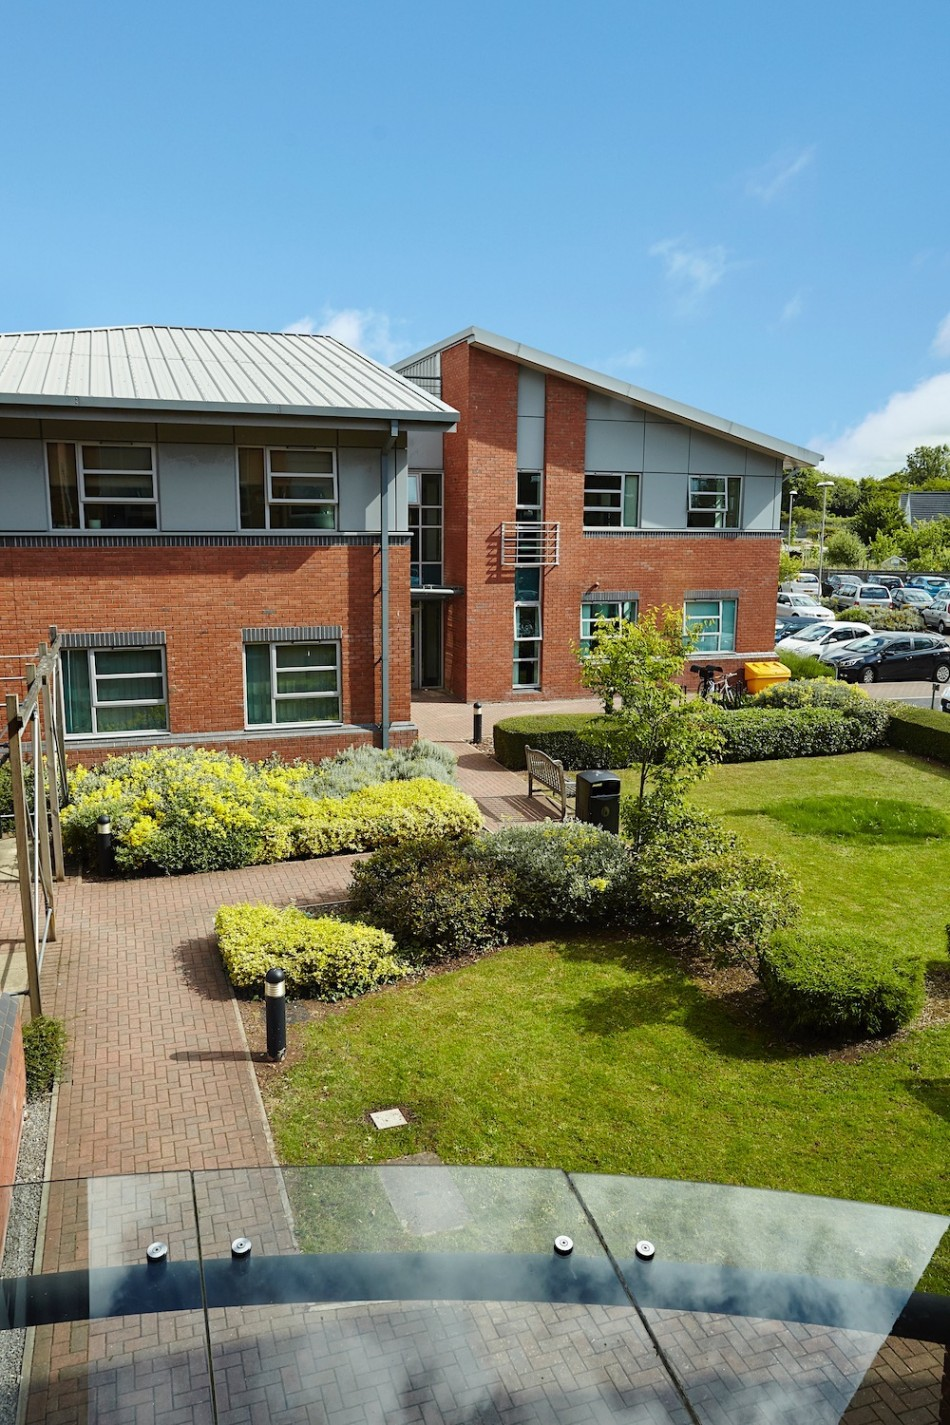 Images for Corum II, Corum Office Park, Warmley, Bristol EAID:2625280308 BID:Bristol